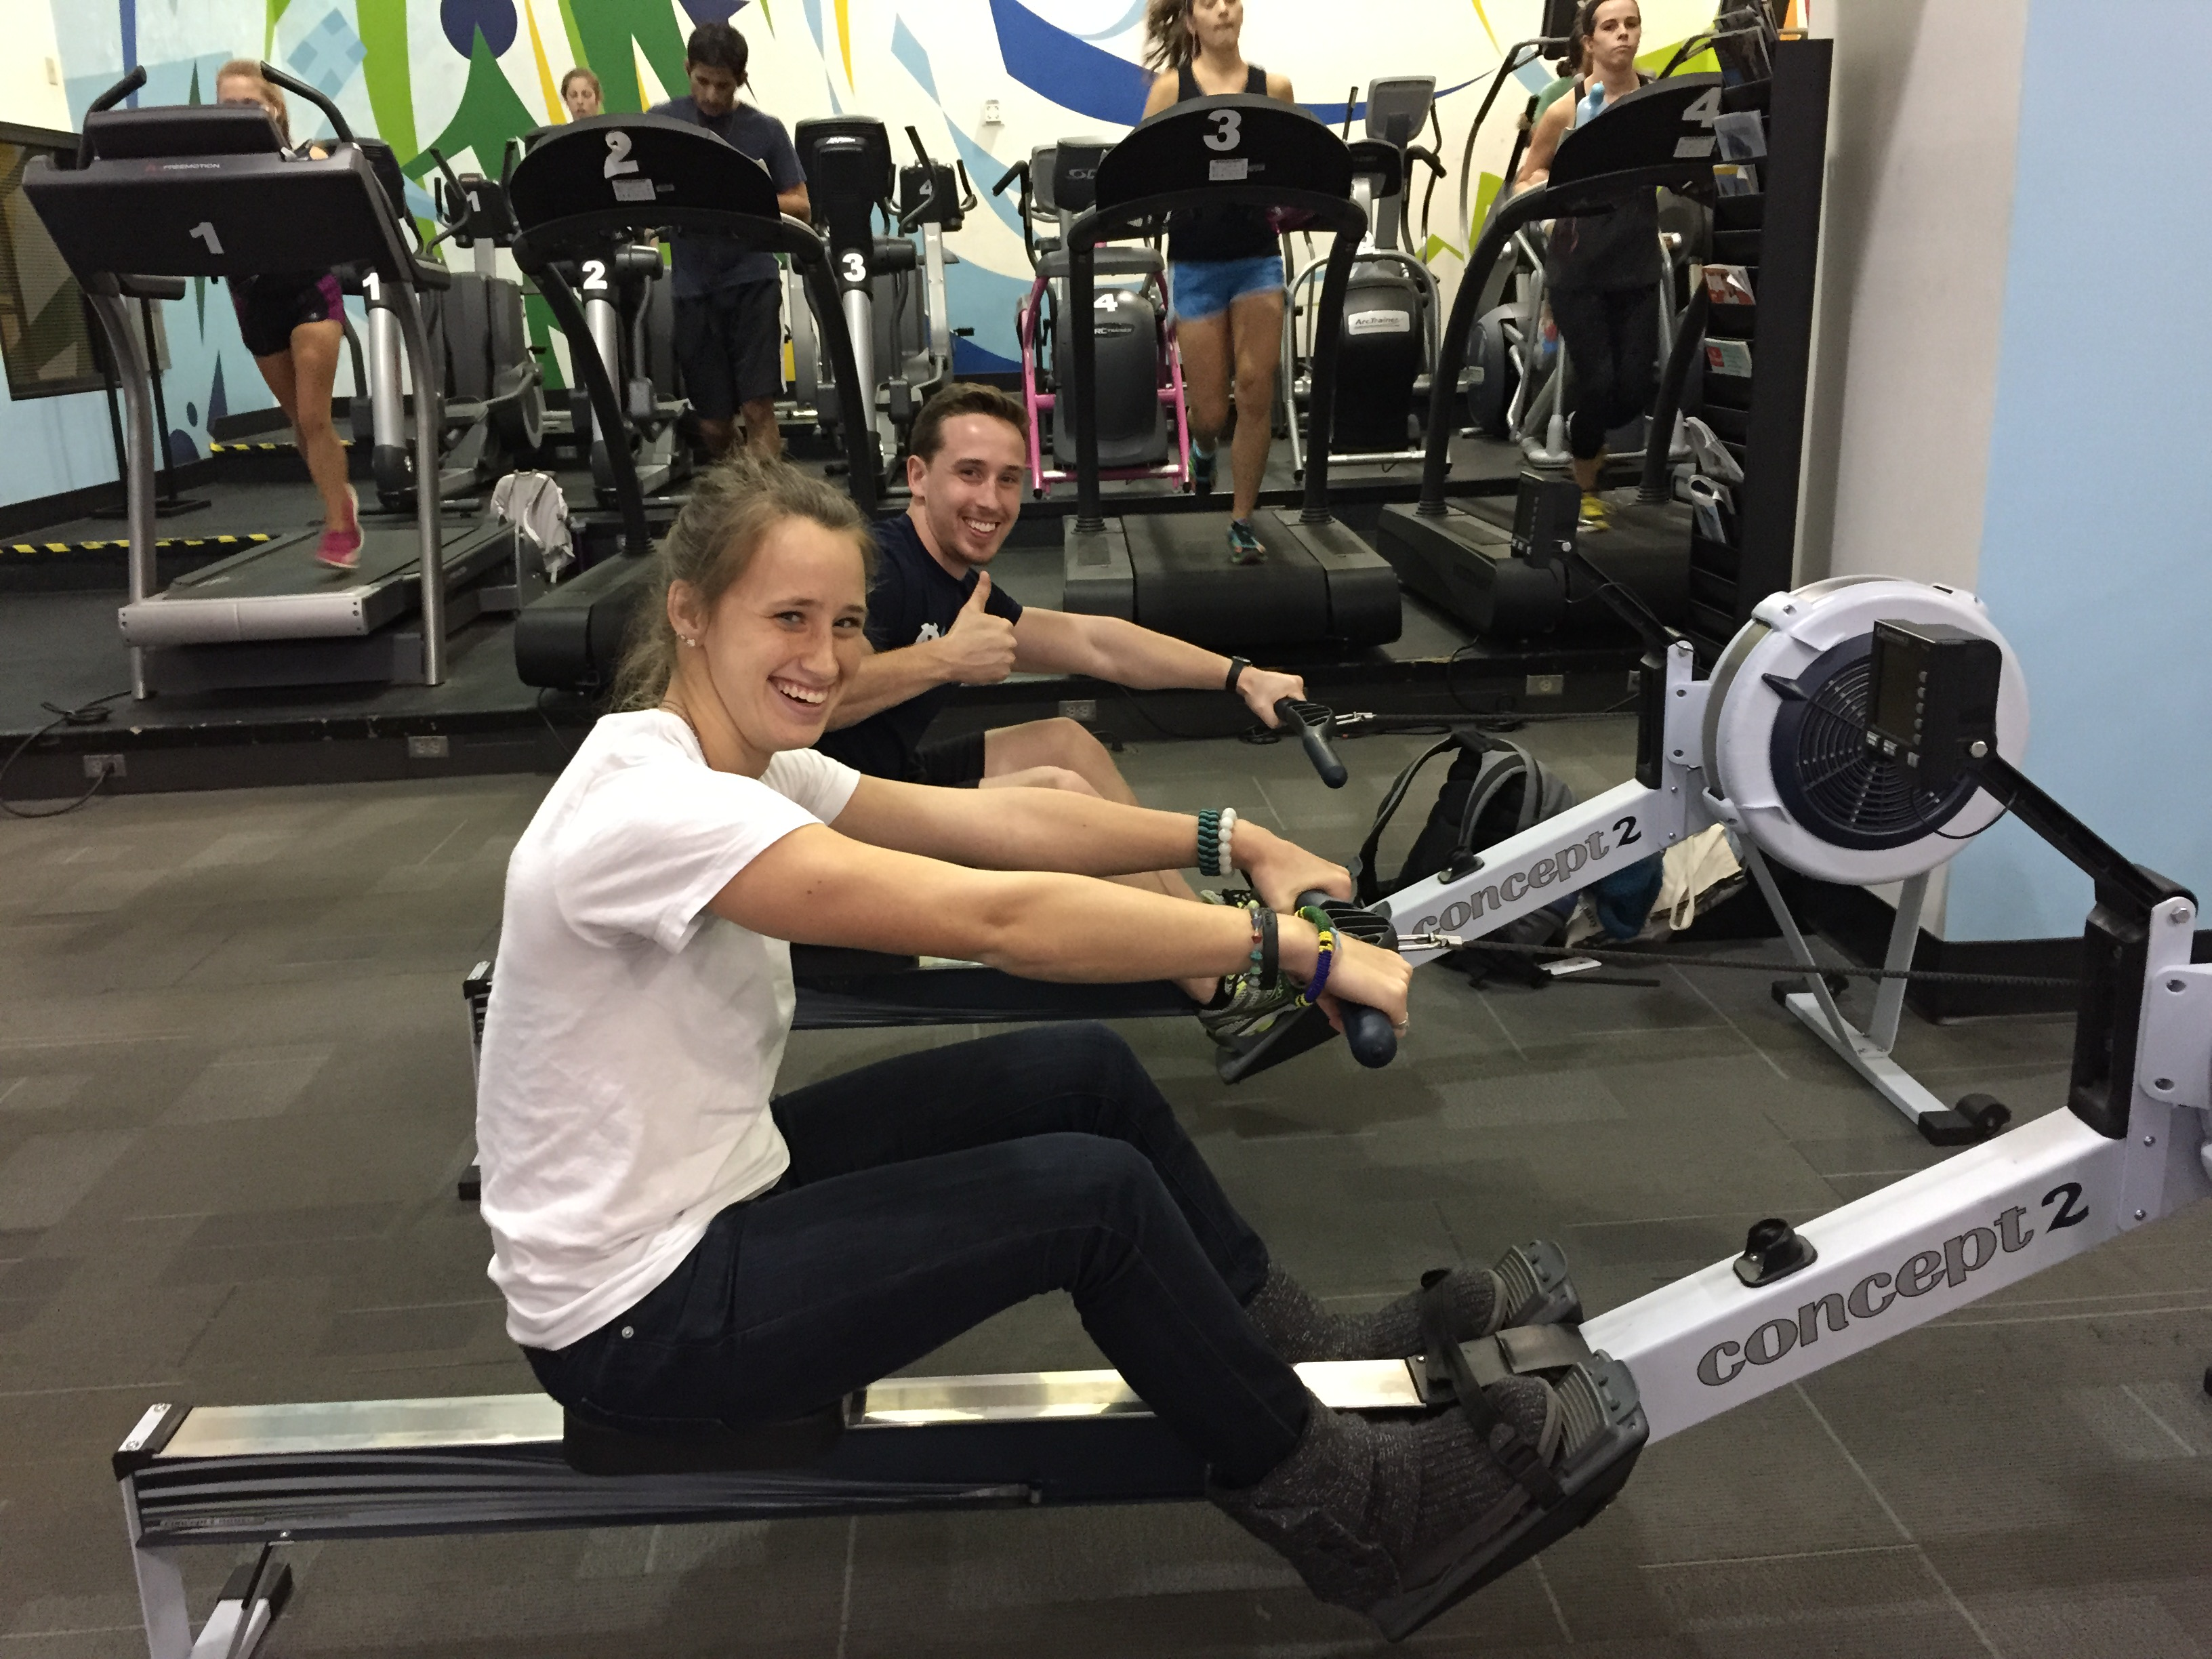 WORKOUT WEDNESDAY: How to Properly Use an Indoor Rowing ...